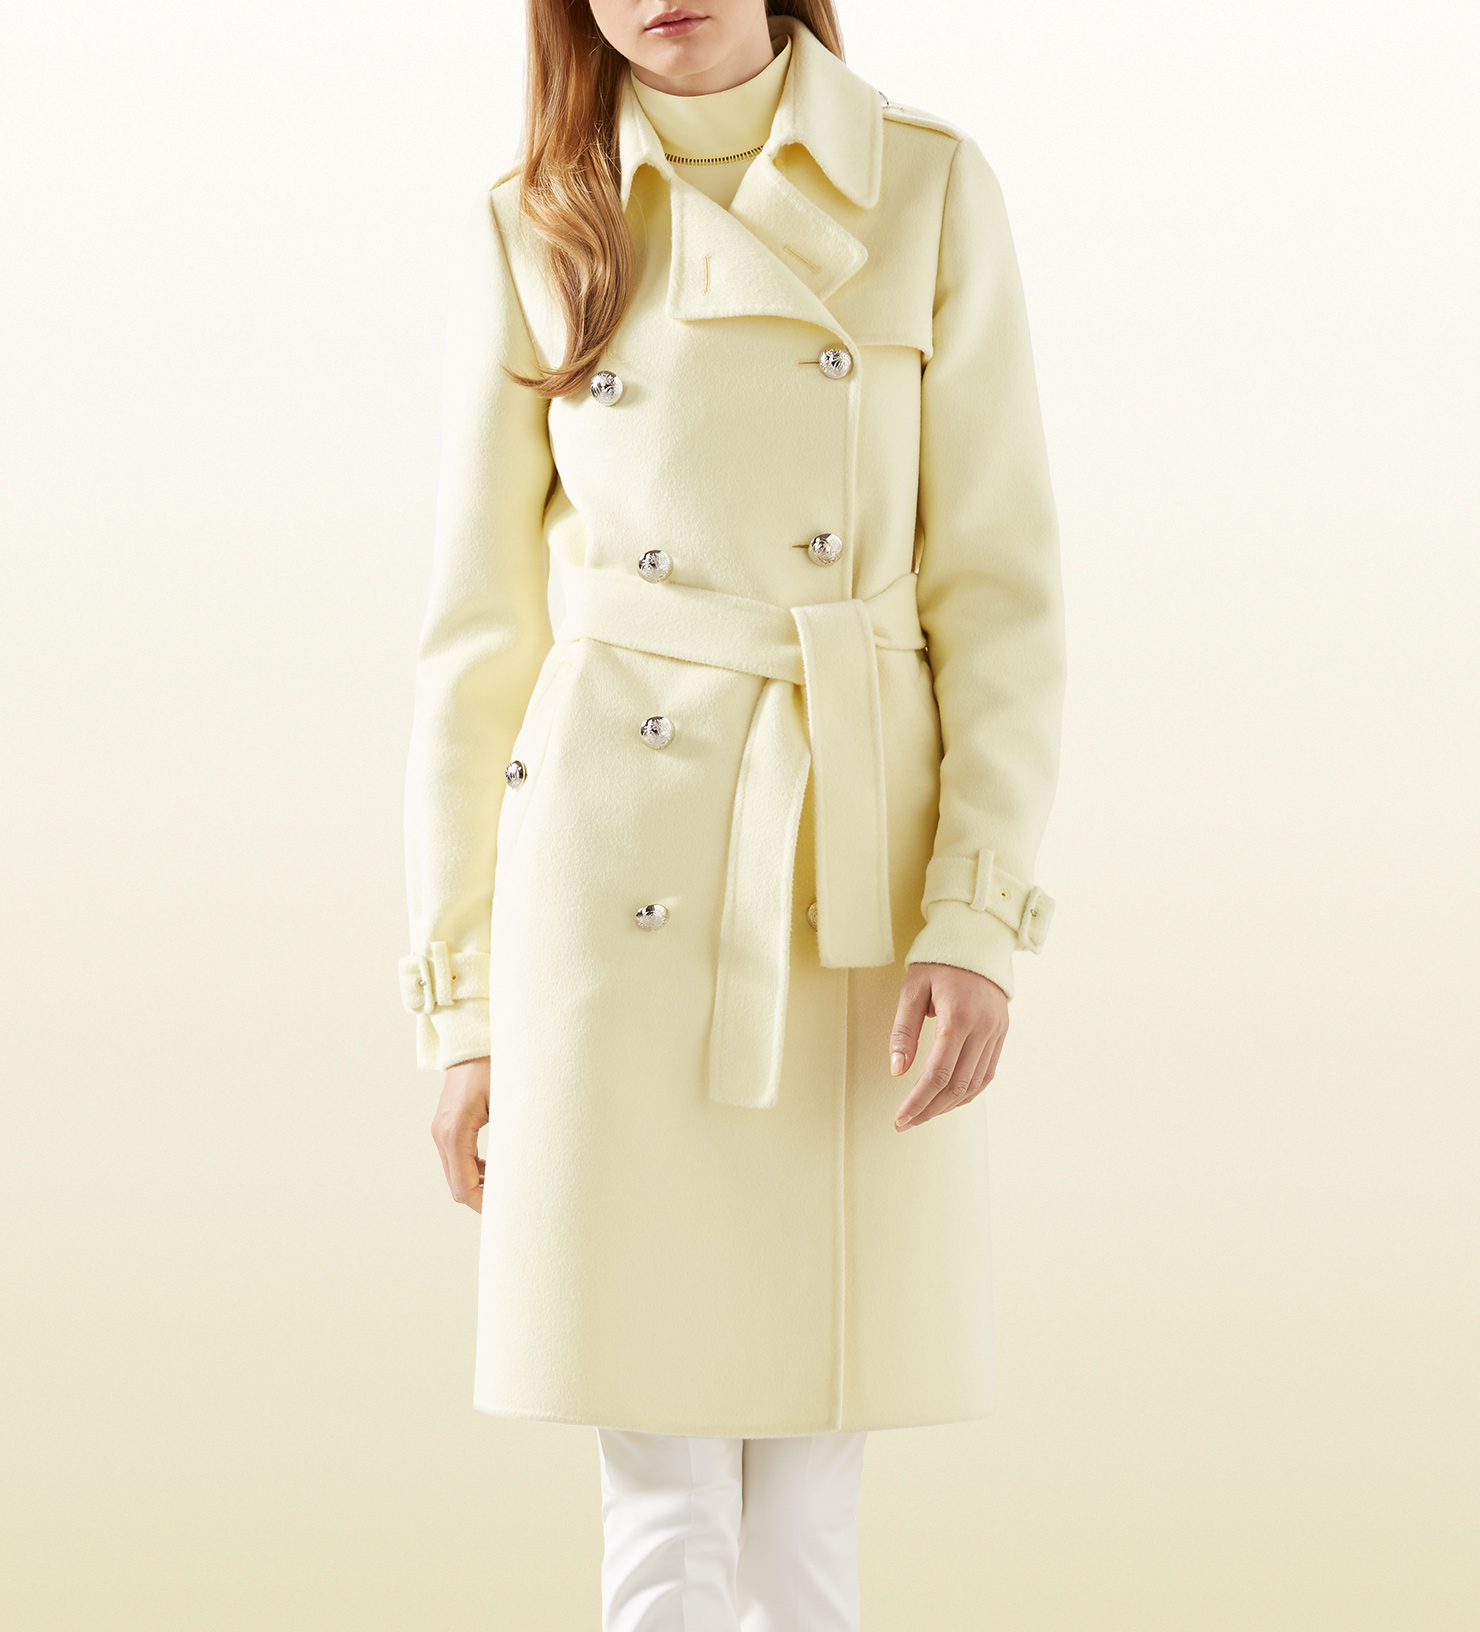 Reversible Double Faced Yellow/Beige Wool Coat, provides 2 pastels for a lighter looking outfit, while marrying warmth and comfort with utility.